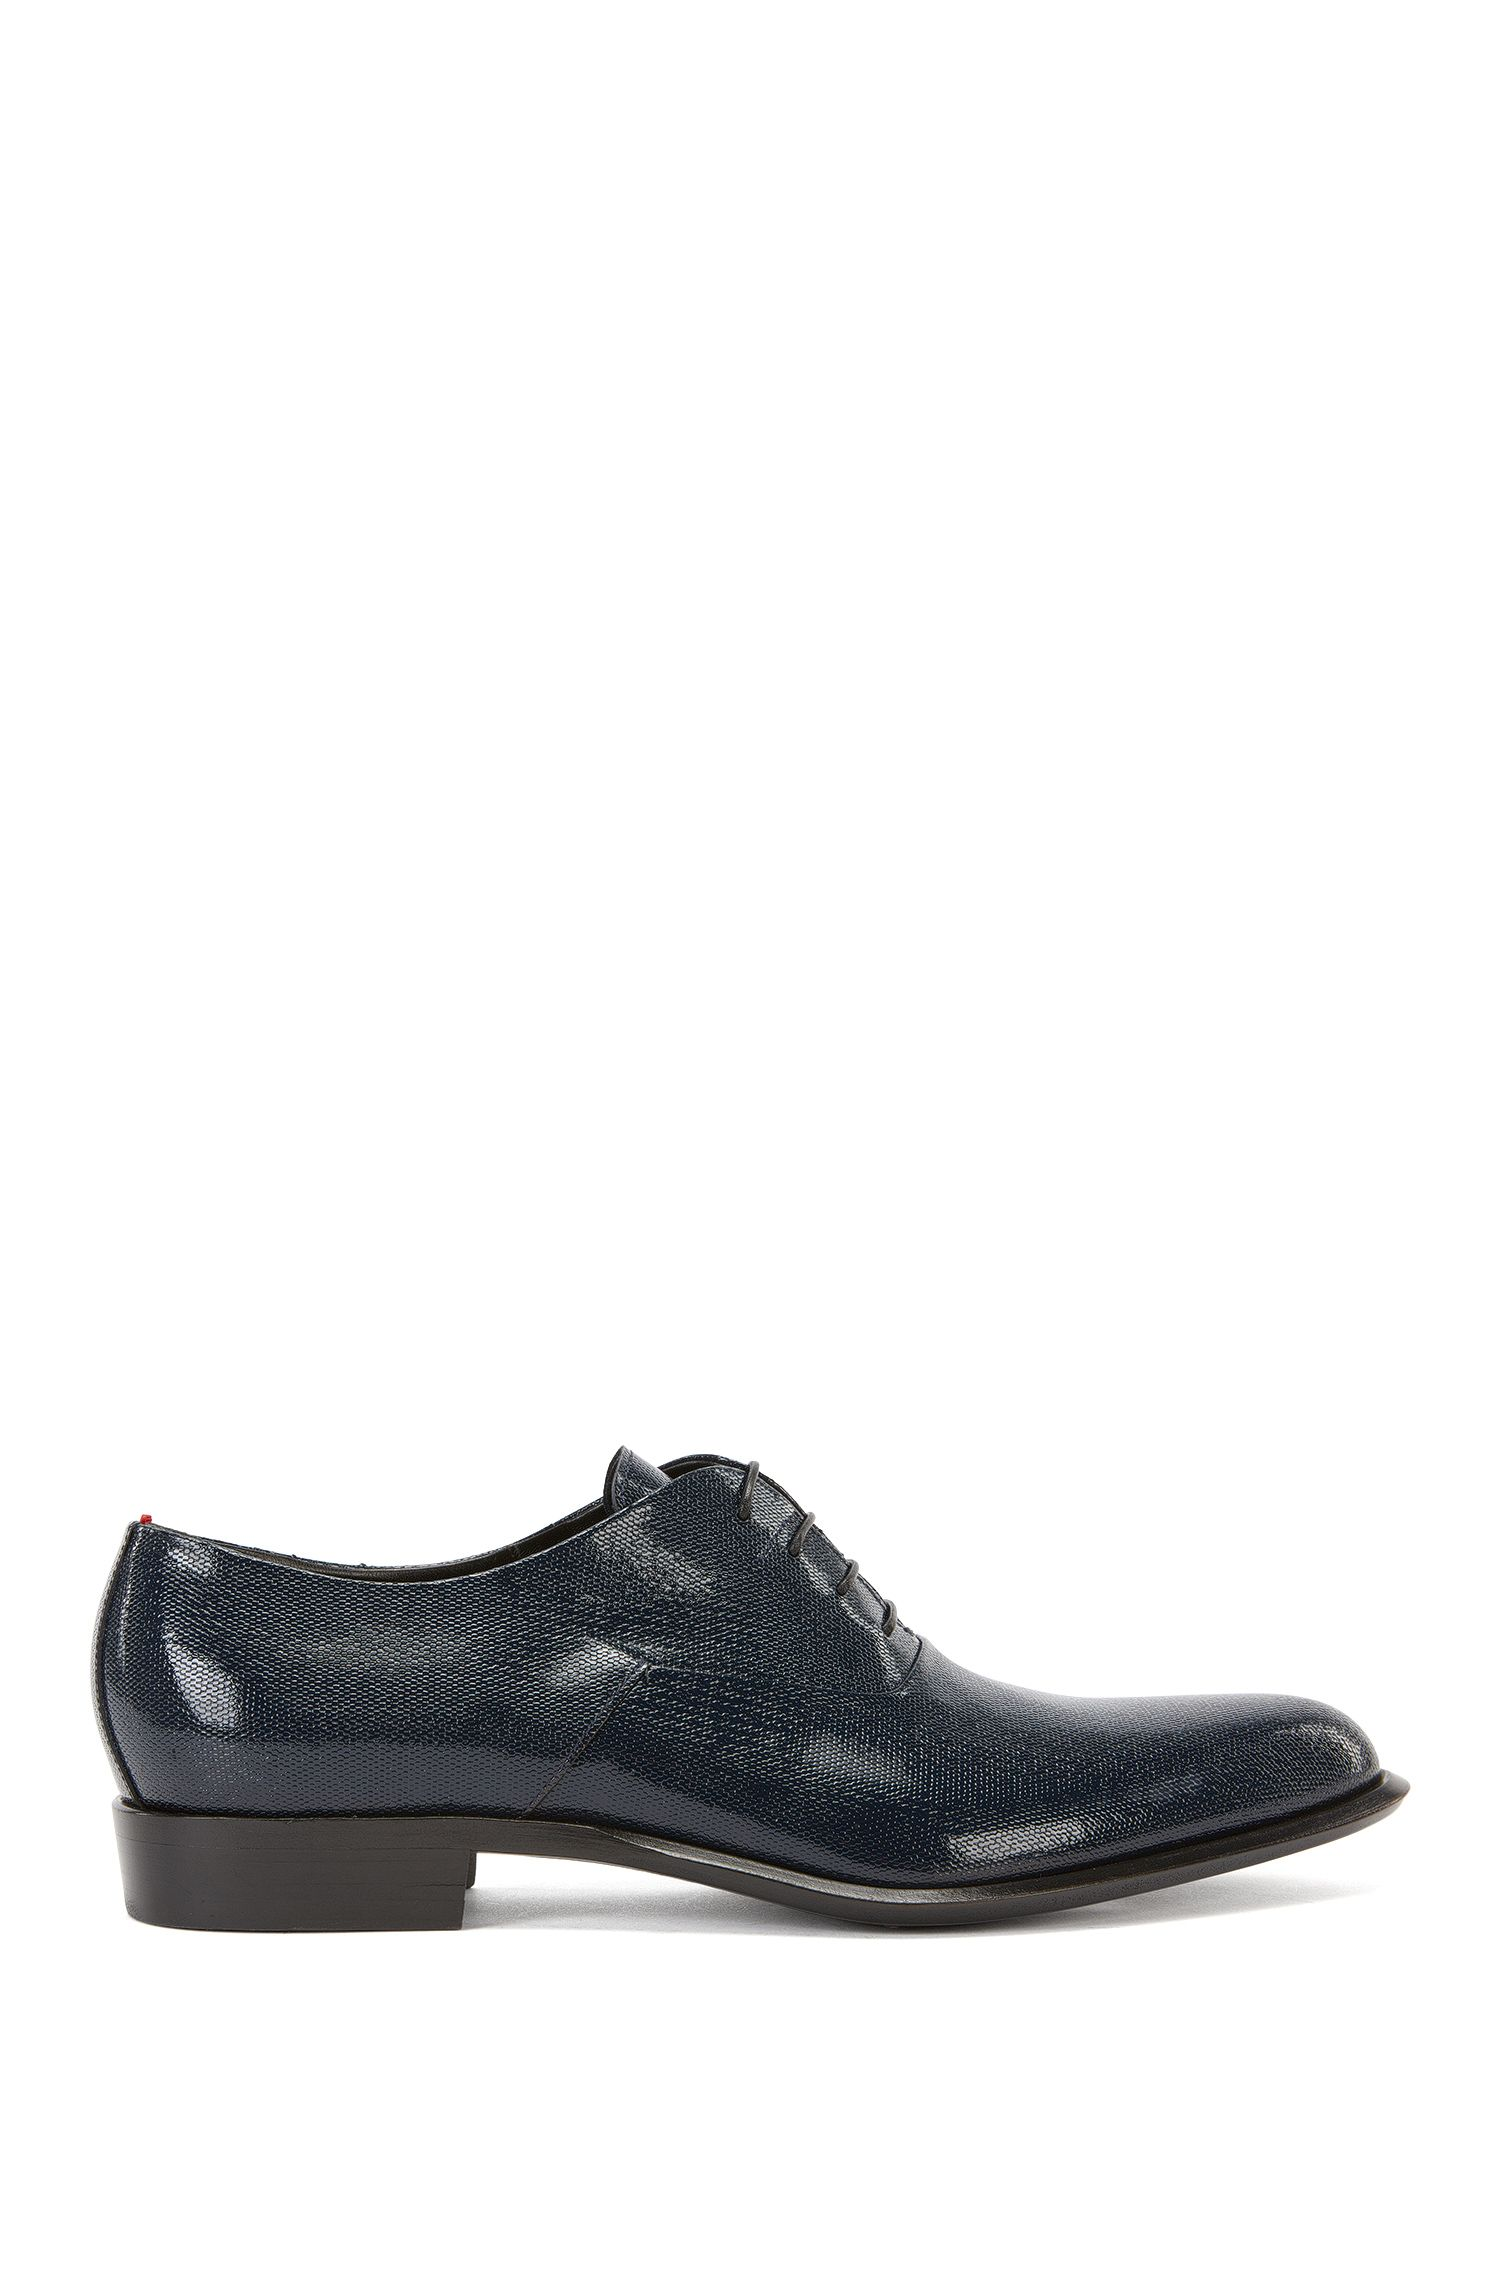 Embossed Leather Oxford Dress Shoe | Deluxe Oxfr Paper